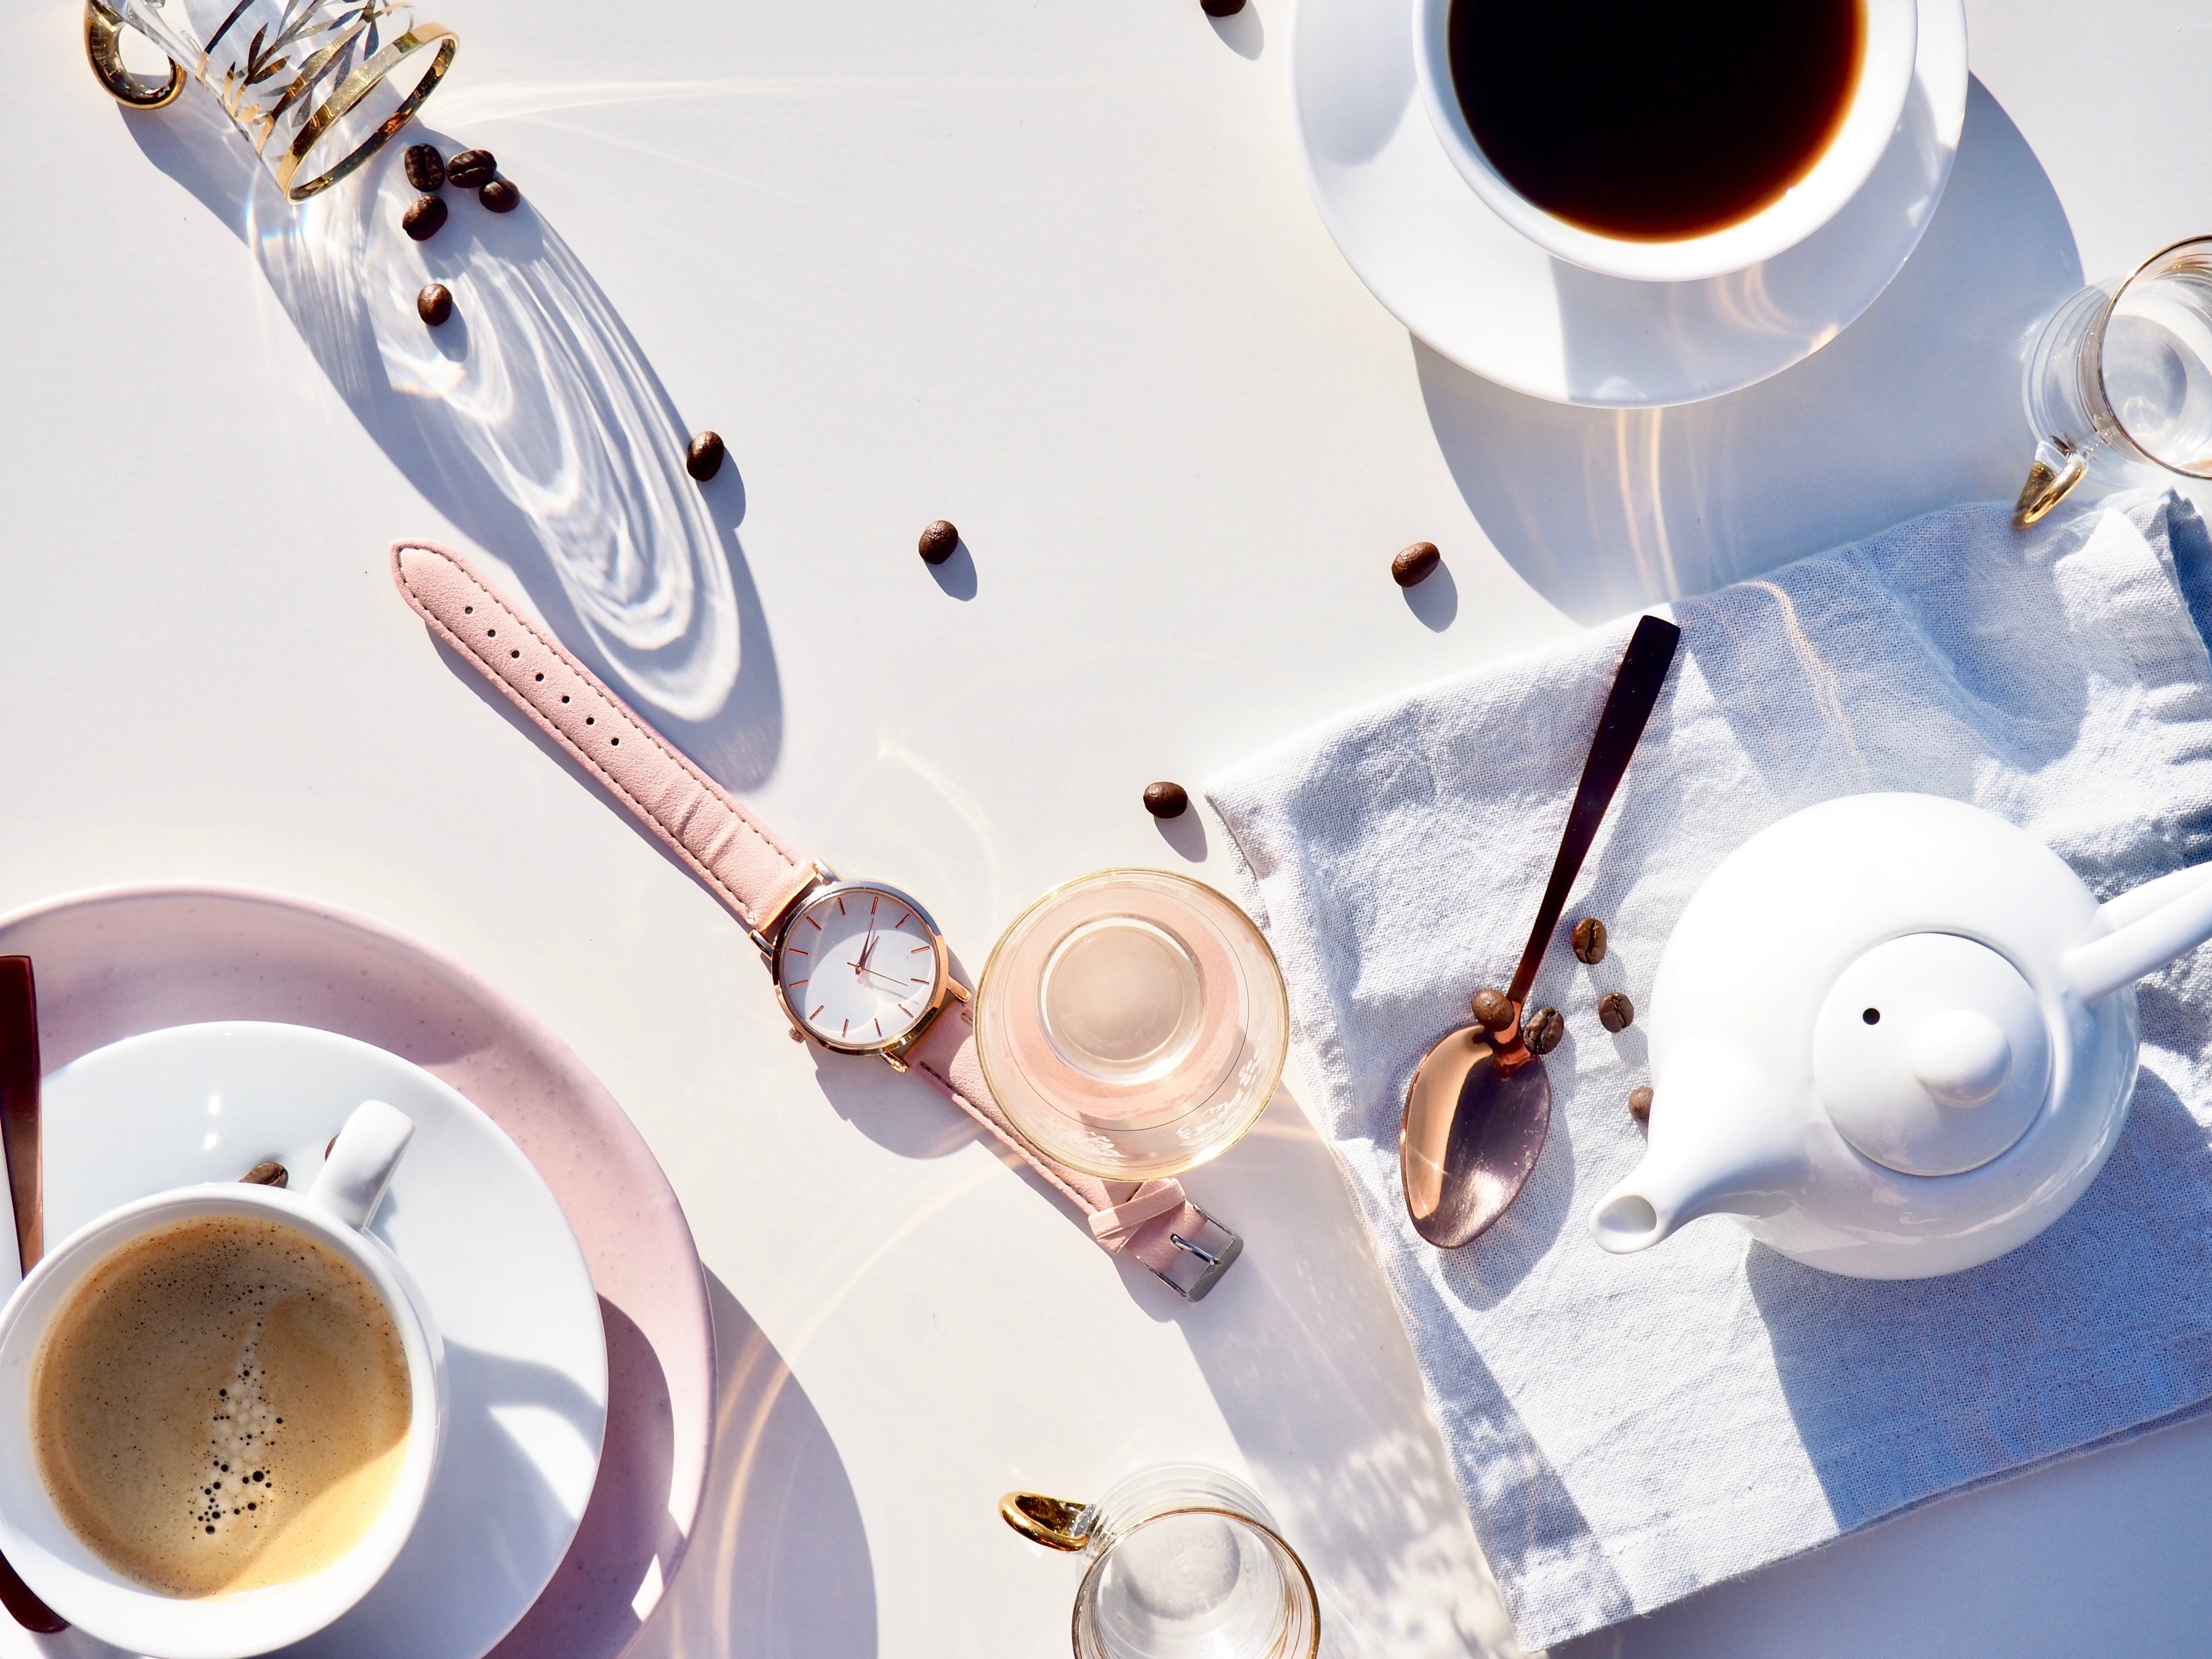 Spoon, Watch, Cups, and Kettle on Table